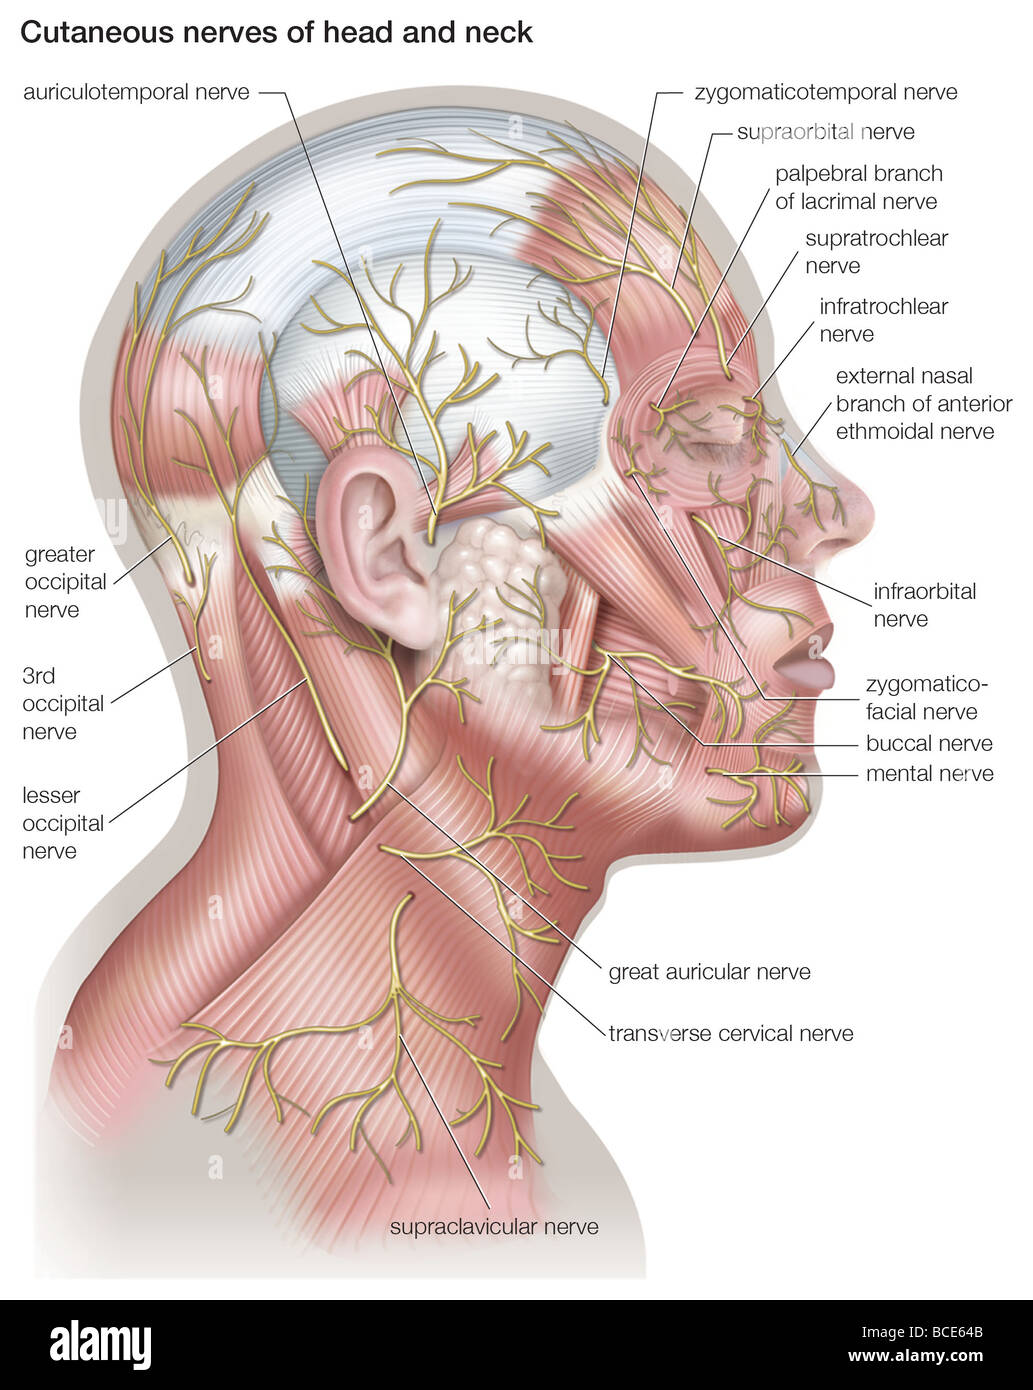 Diagram Of The Cutaneous Nerves Of The Head And Neck Stock Photo